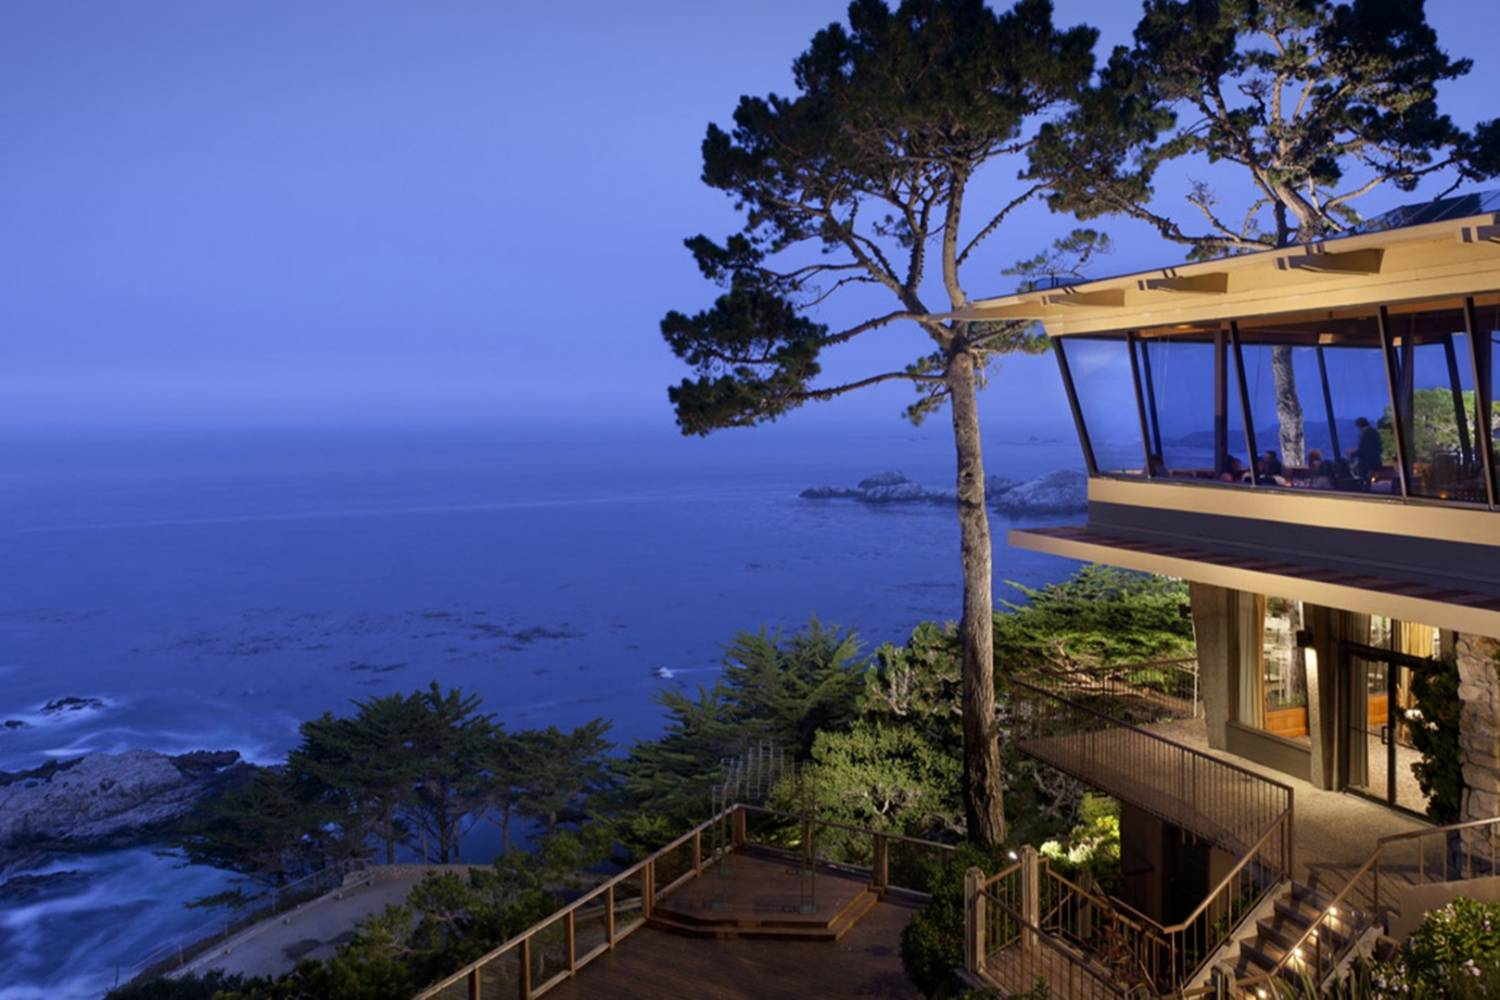 Enjoy a private chef after an amazing day in Carmel Highlands California